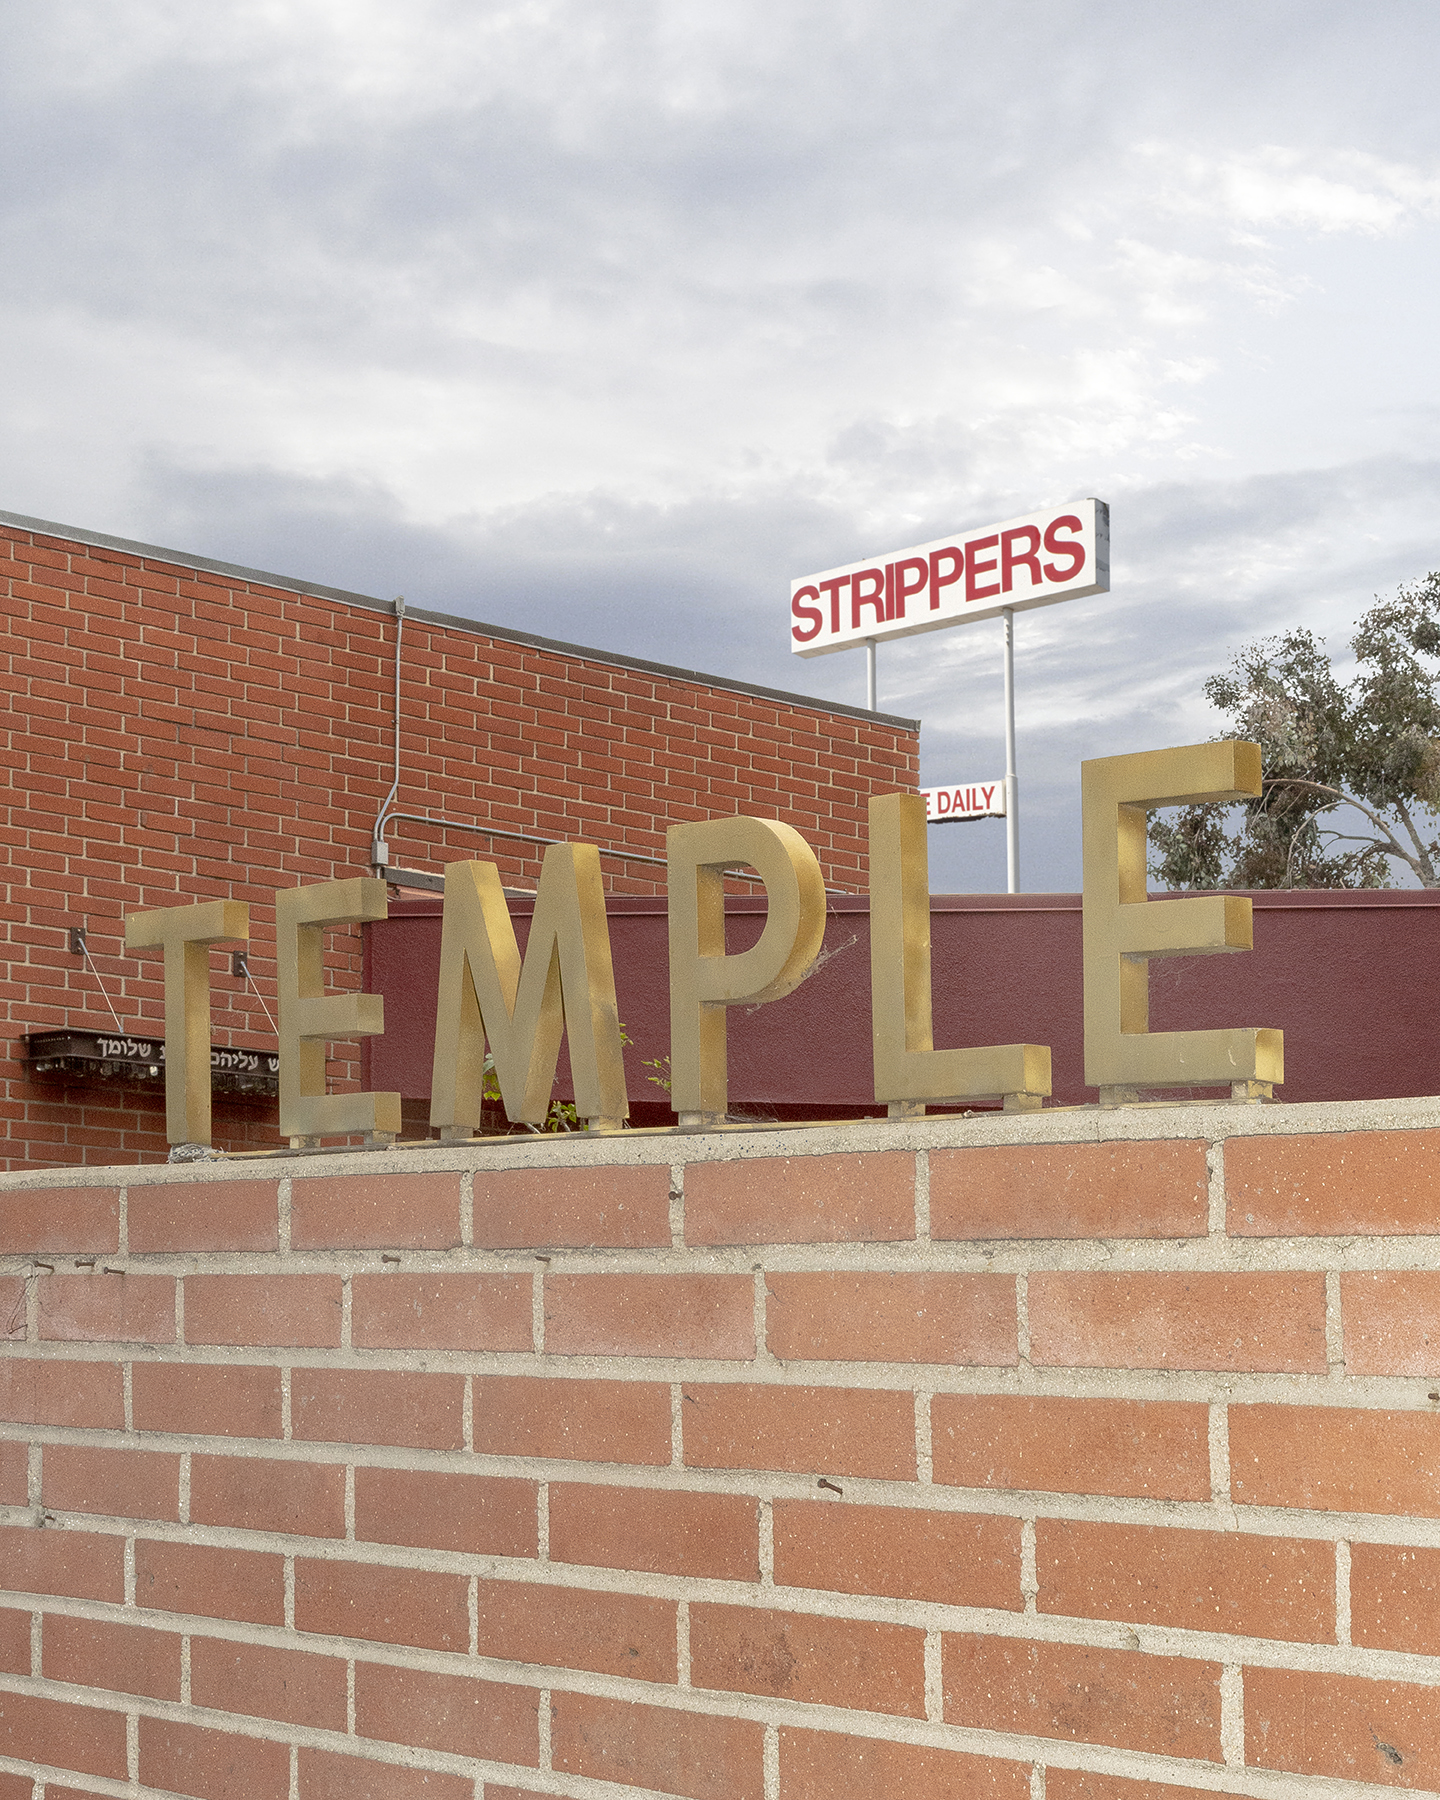 temple-strippers.jpg